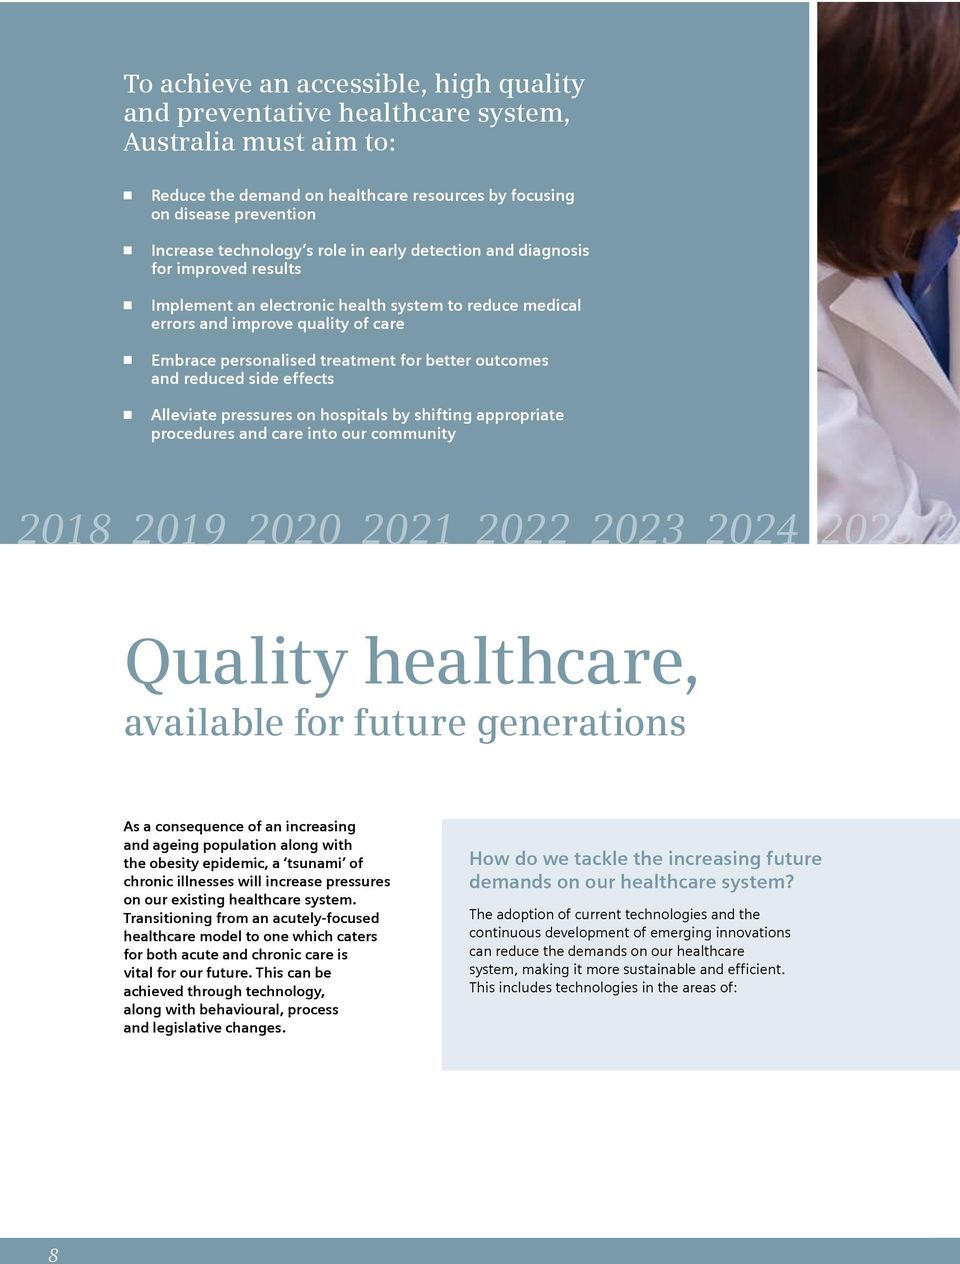 outcomes and reduced side effects Alleviate pressures on hospitals by shifting appropriate procedures and care into our community 2018 2019 2020 2021 2022 2023 2024 2025 20 Quality healthcare,